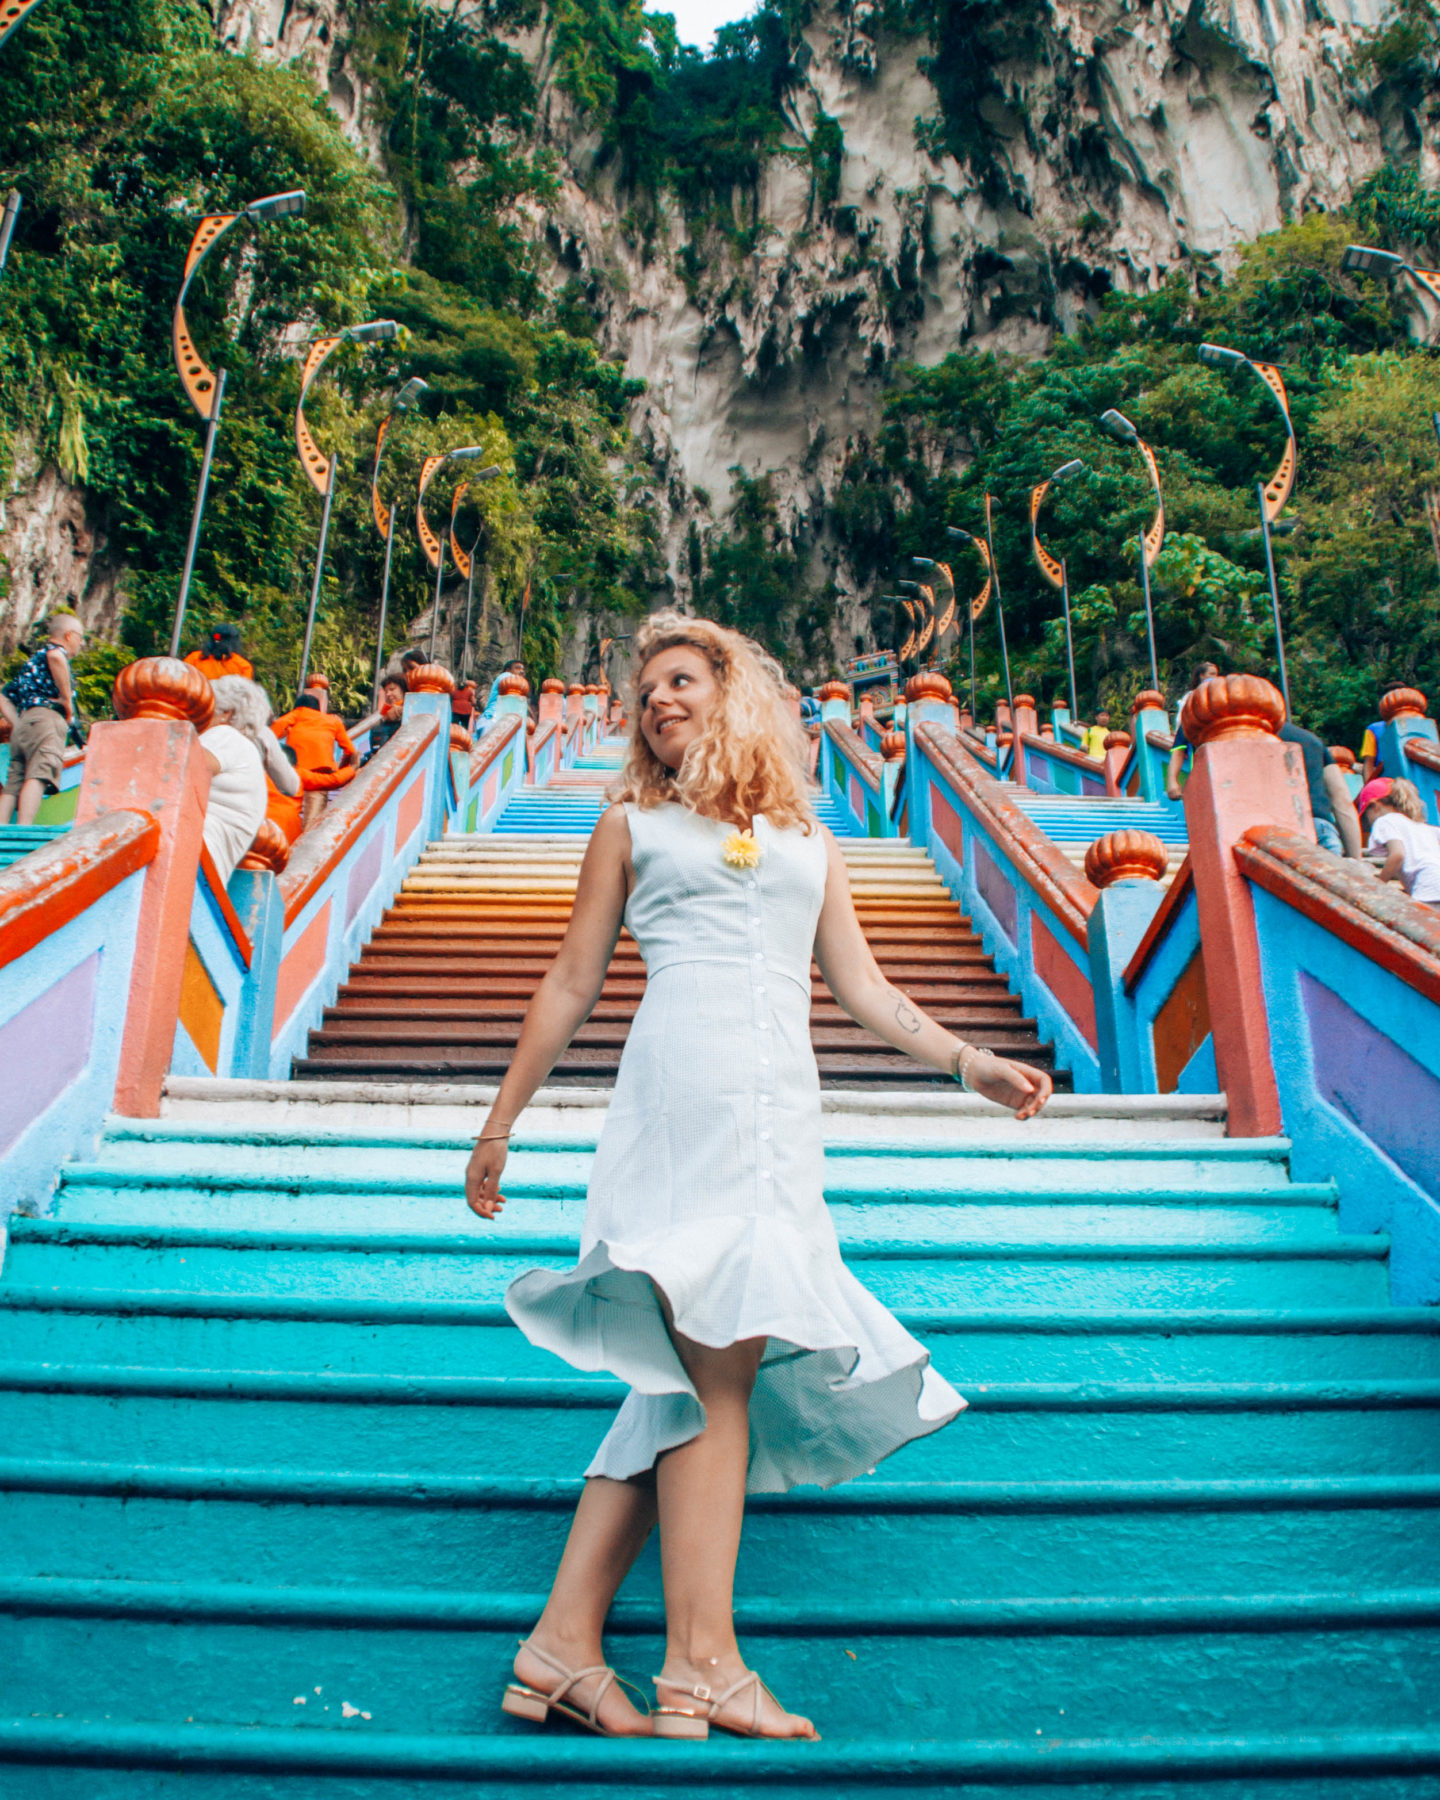 The 272 colorful steps of the Batu Caves hindu temple in Kuala Lumpur